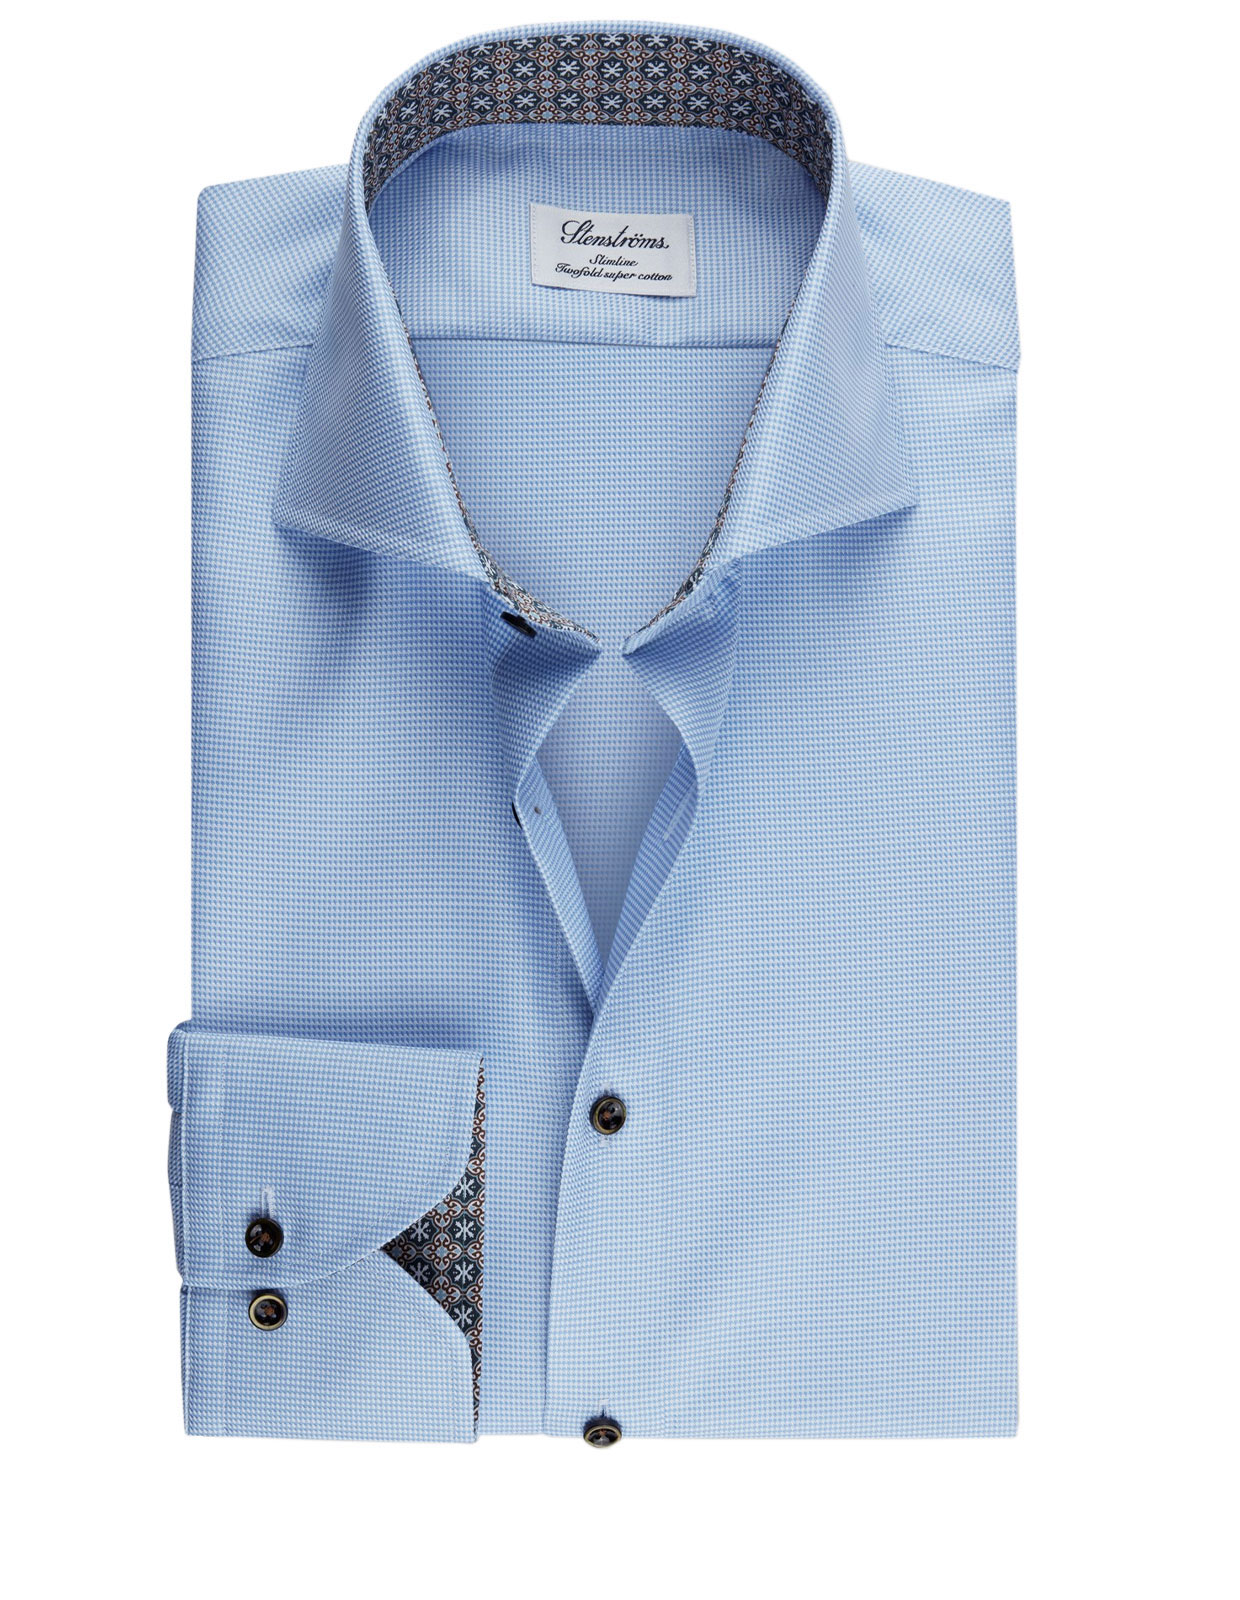 Slimline Shirt Extra Long Sleeve Contrast L.Blue Dogtooth